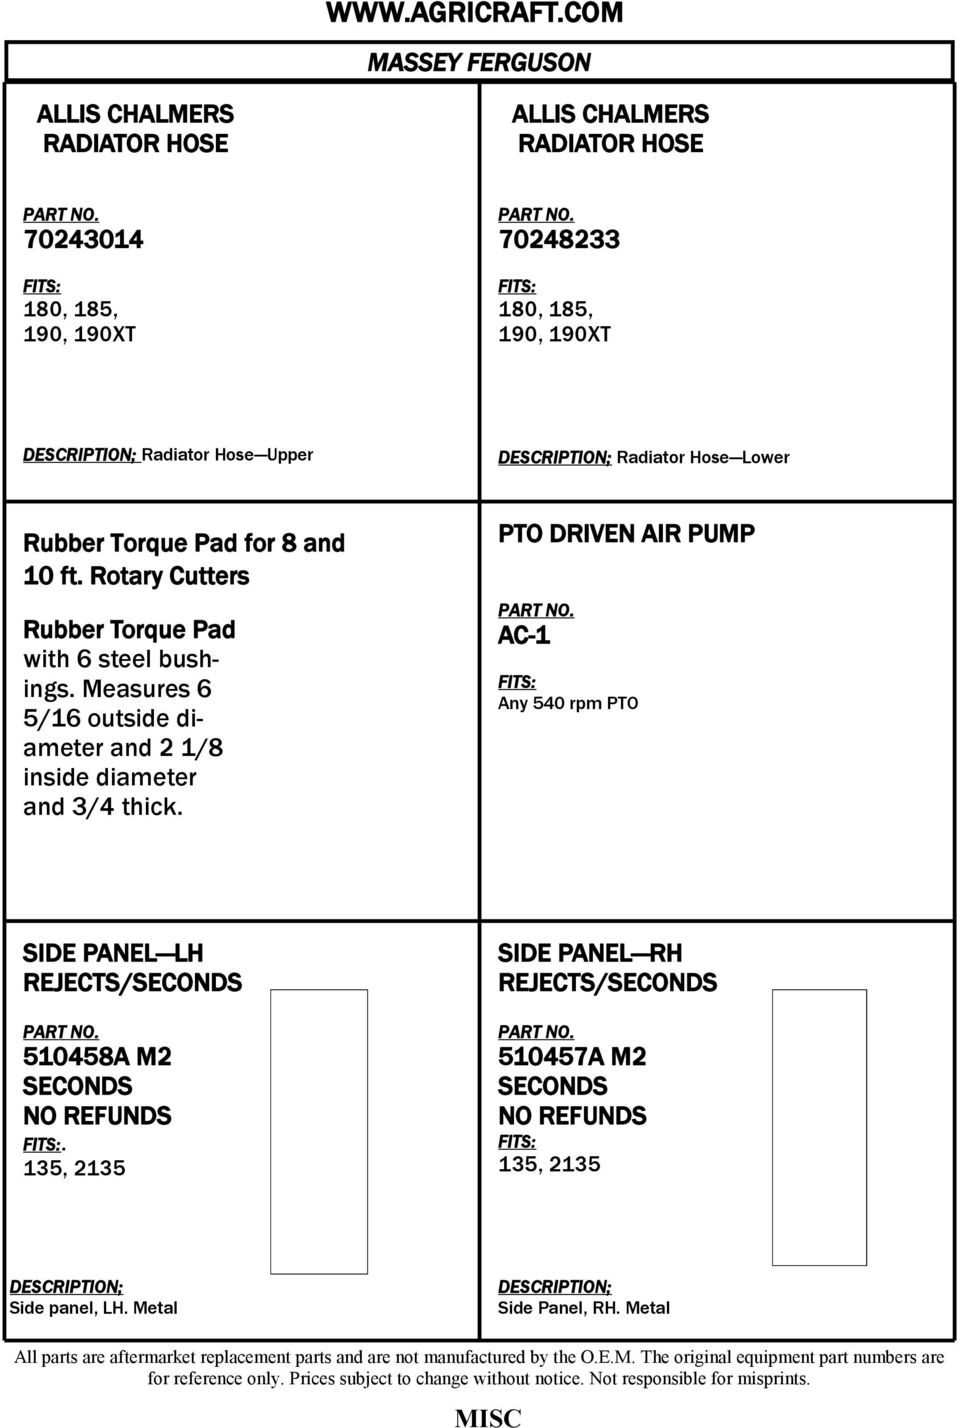 PARTS SECTION  Section MF4 - PDF